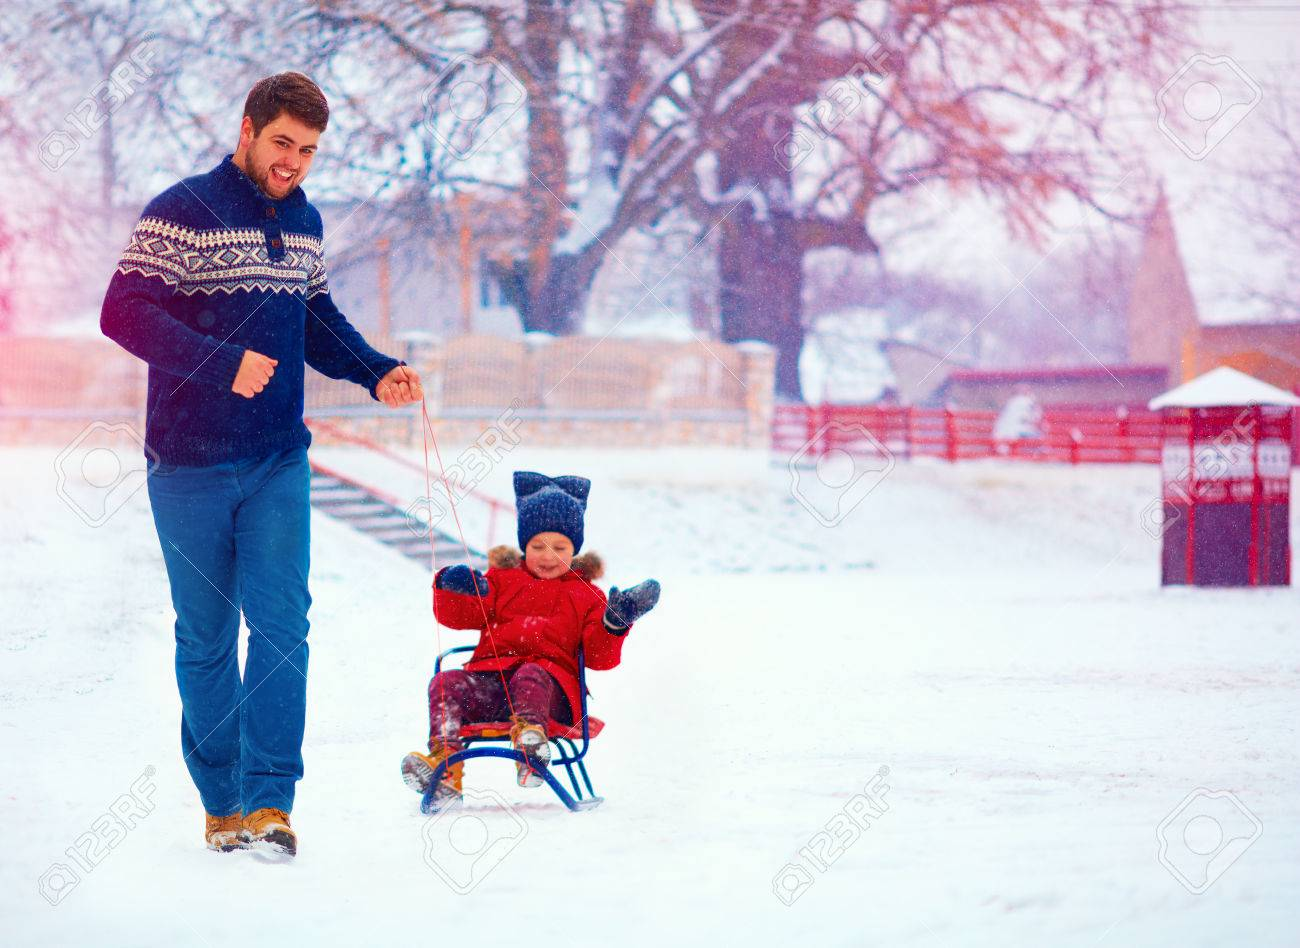 eda2d85a4a happy father and son having fun with sledge under winter snow Stock Photo -  50965462